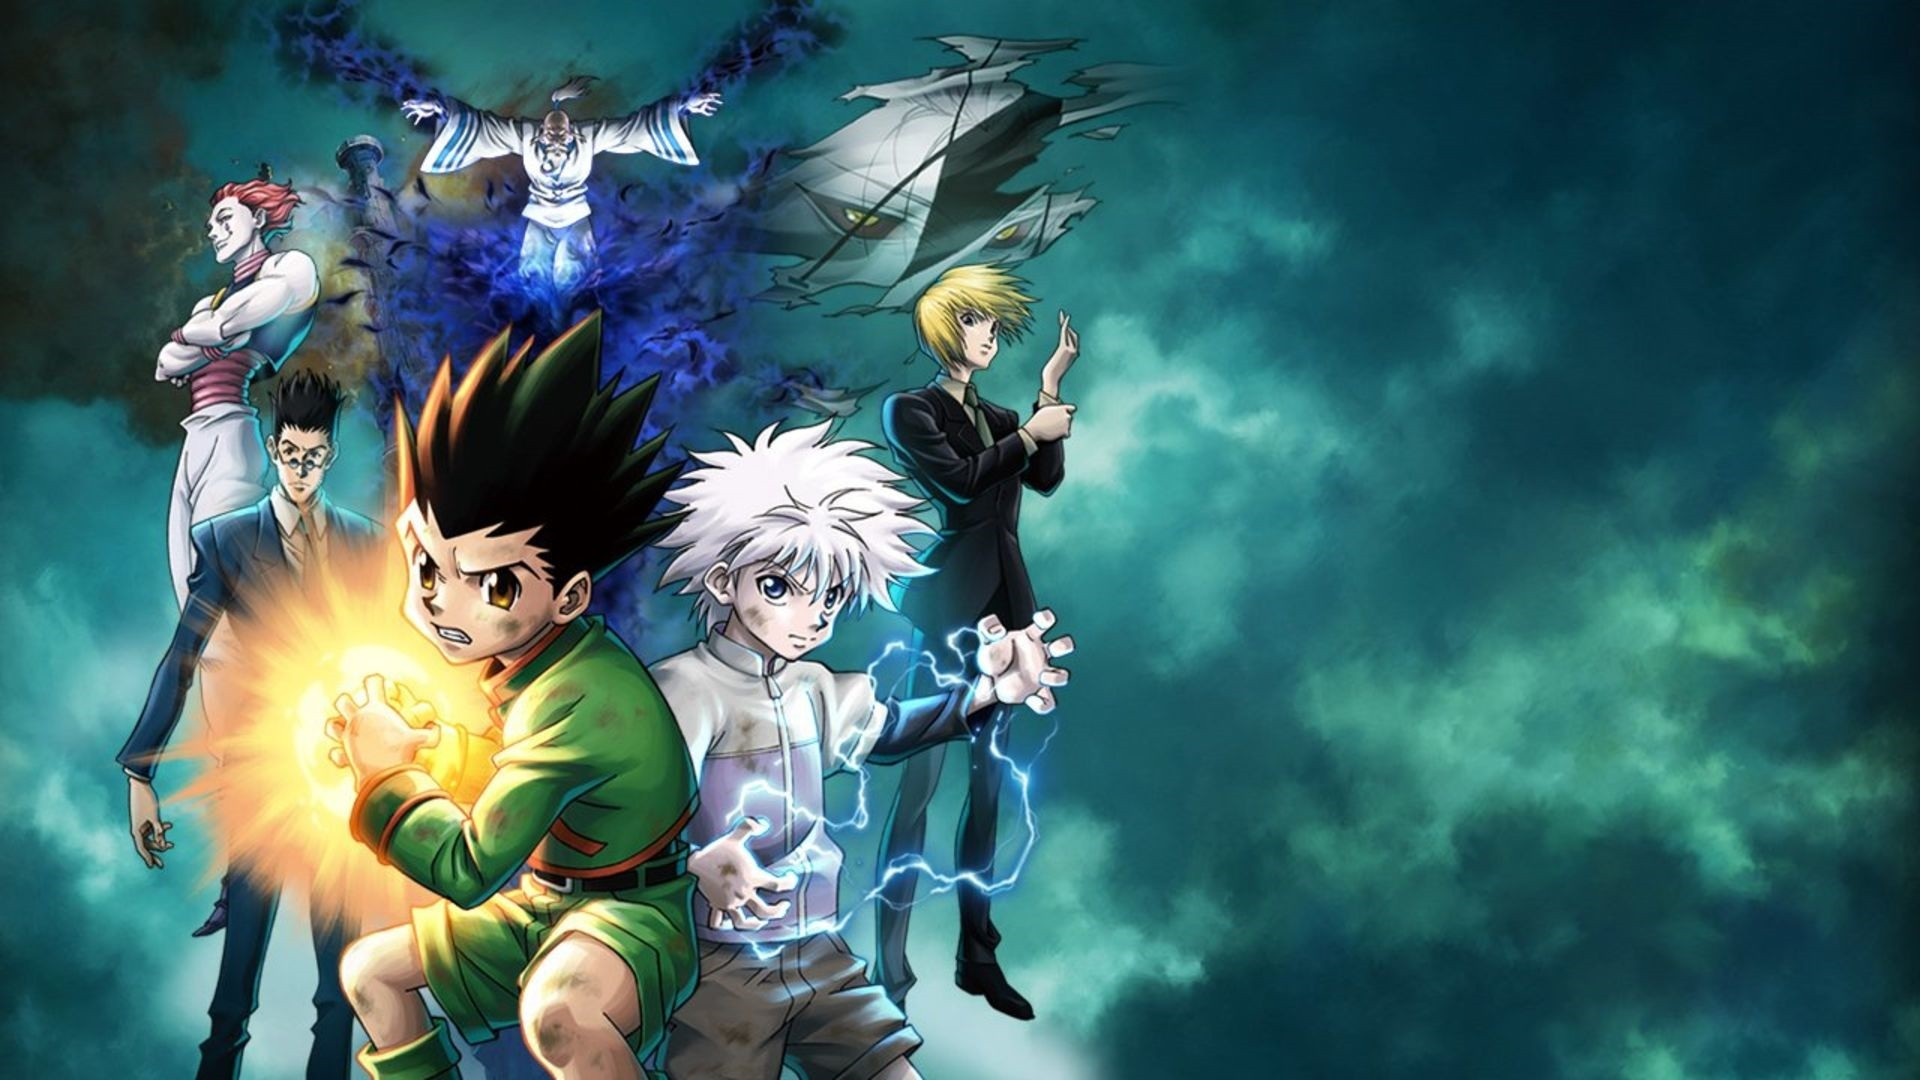 Hunter x Hunter Chapter 391 Release Date in 2021 Possible